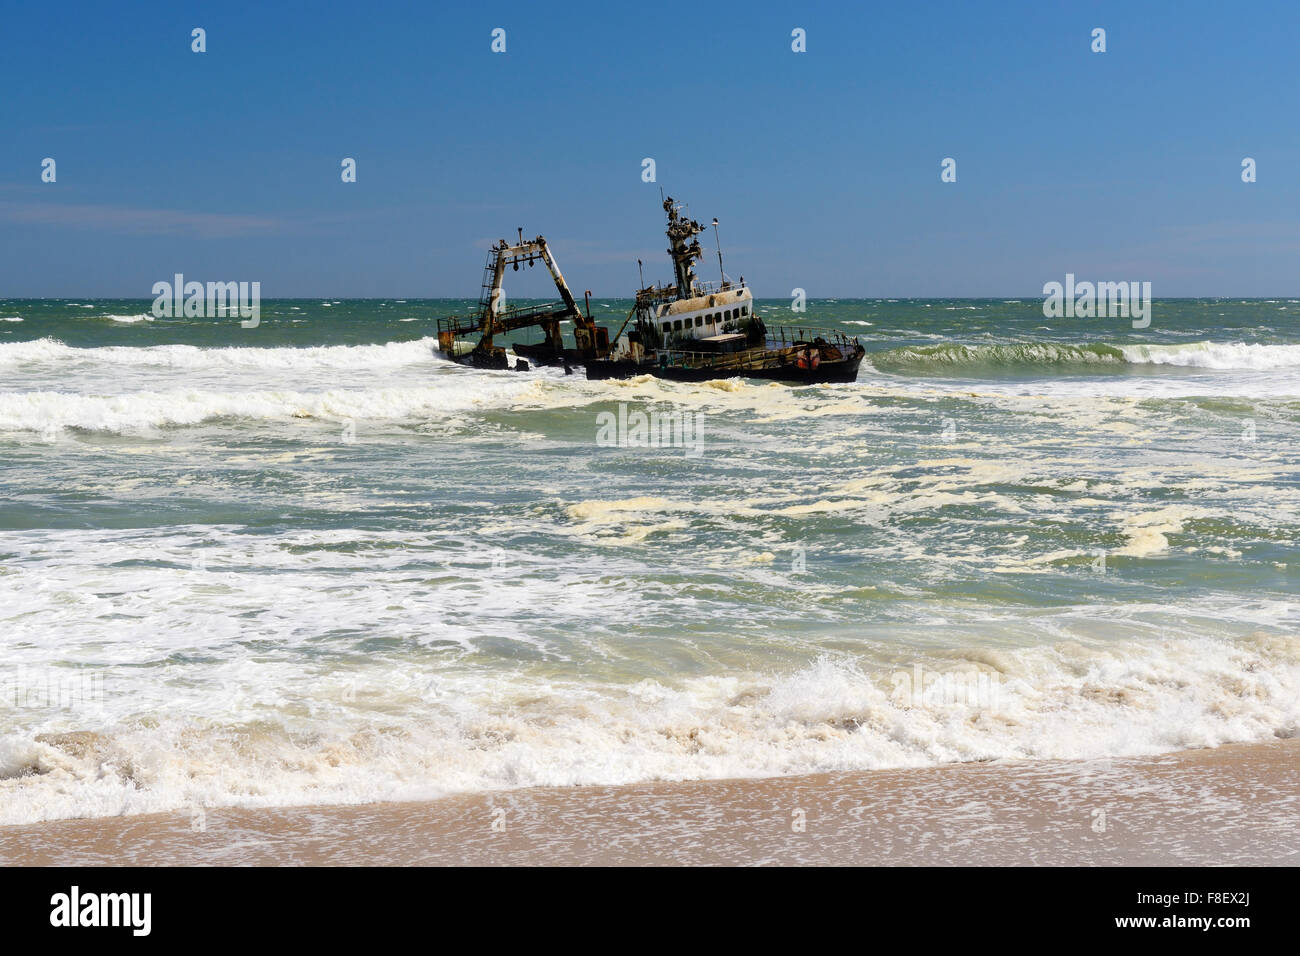 Shipwreck off Skeleton Coast north of Swakopmund, Namibia - Stock Image